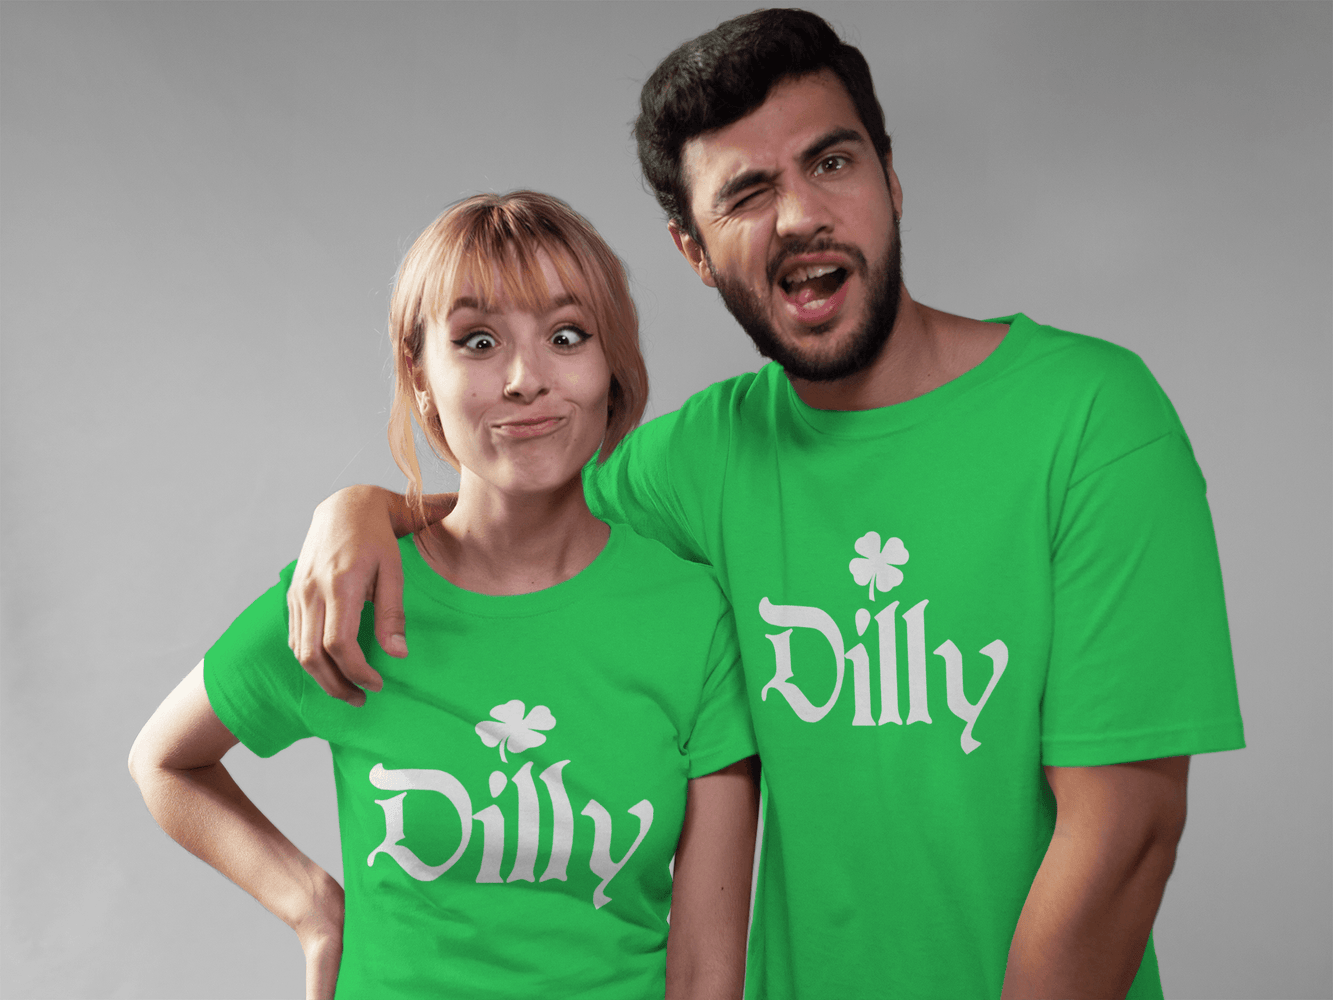 Matching St Patricks Day Green T Shirts Couples Saint Patricks Day Group Tees Funny Green Dilly Dilly Shirts for $20.00 at Miss Deplorable